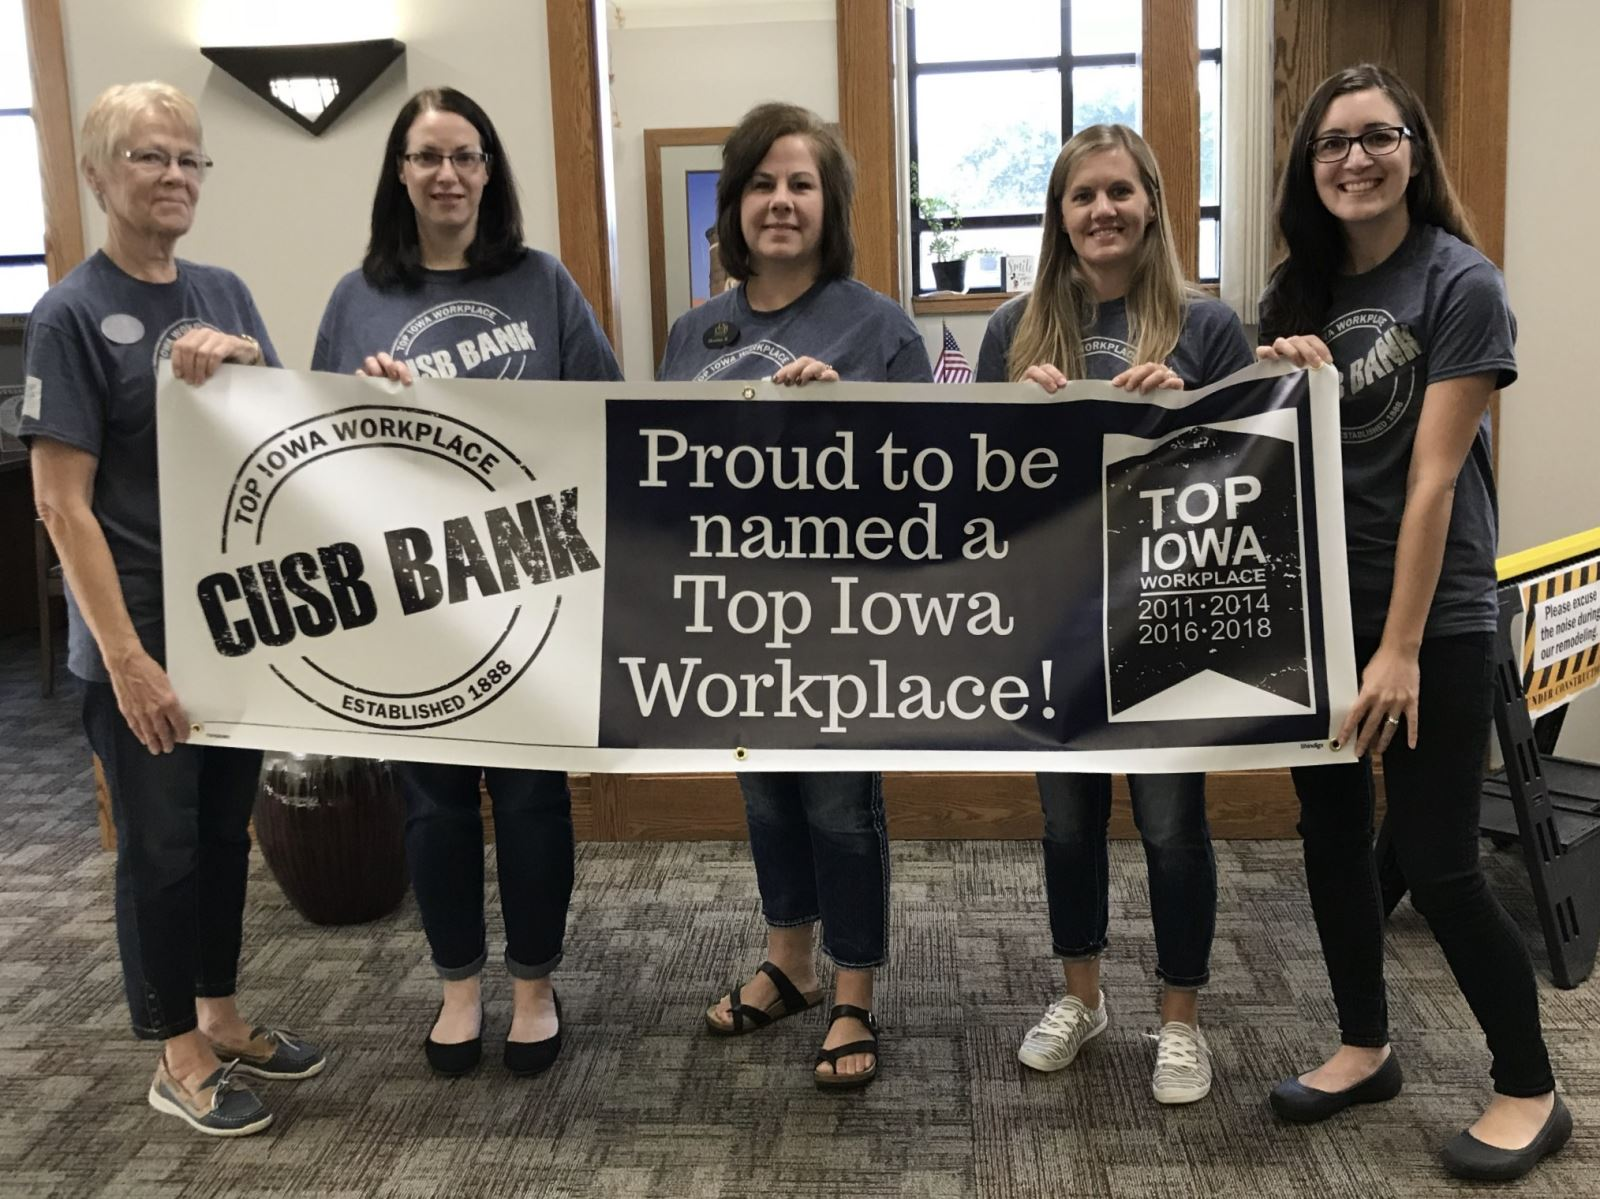 CUSB Bank is proud to be named a Top Iowa Workplace for the fourth time!